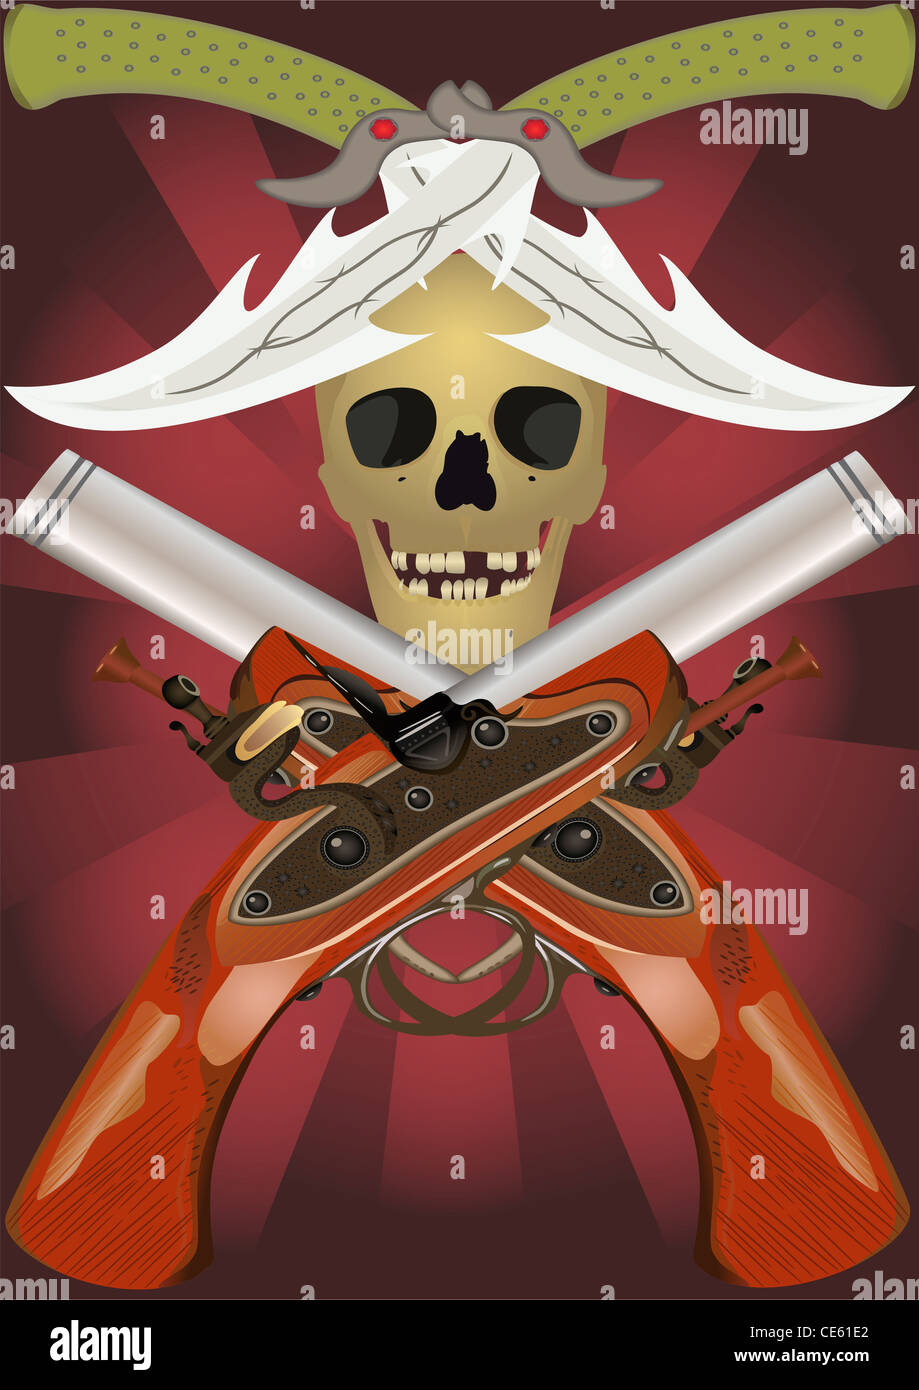 Skull pistols stock photos skull pistols stock images alamy skull with the crossed pistols and knifes stock image voltagebd Gallery